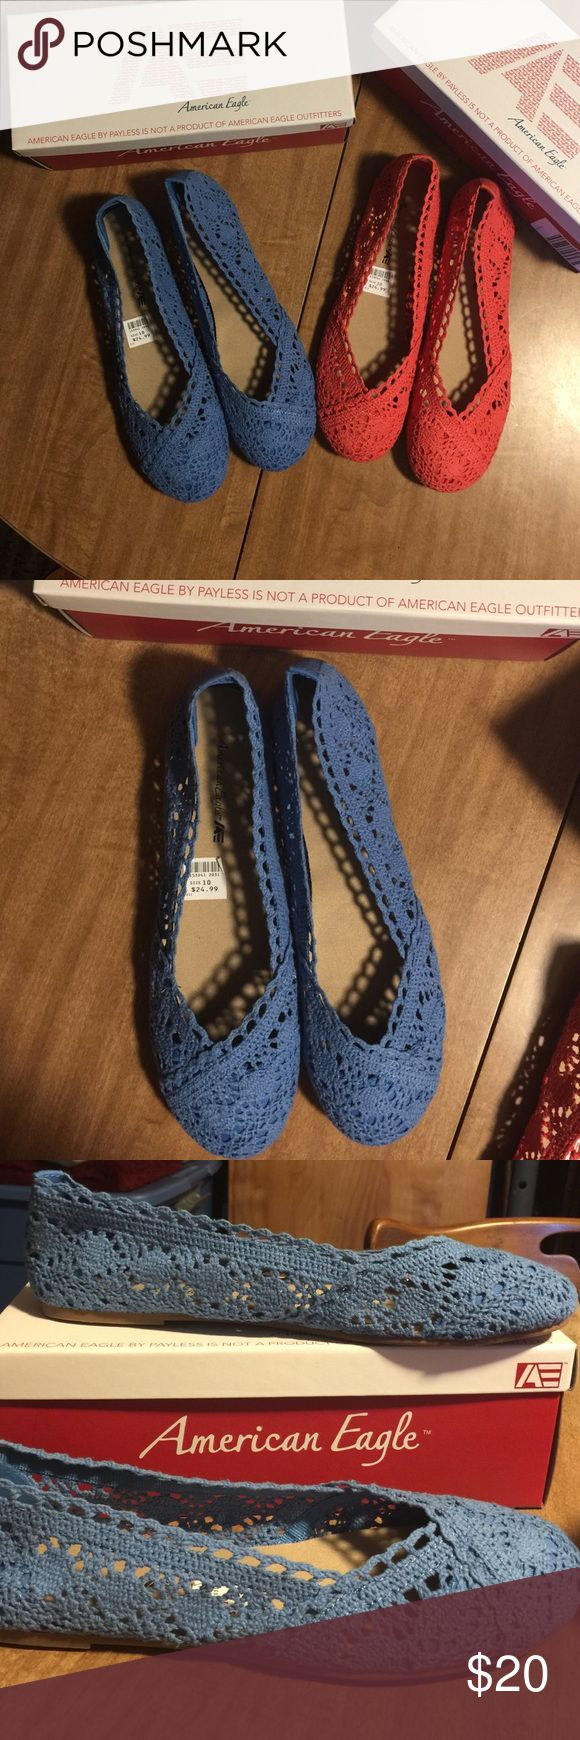 Summer crocheted flats Brand new cute American eagle  summer crochet flats still in box. American Eagle by Payless Shoes Flats & Loafers